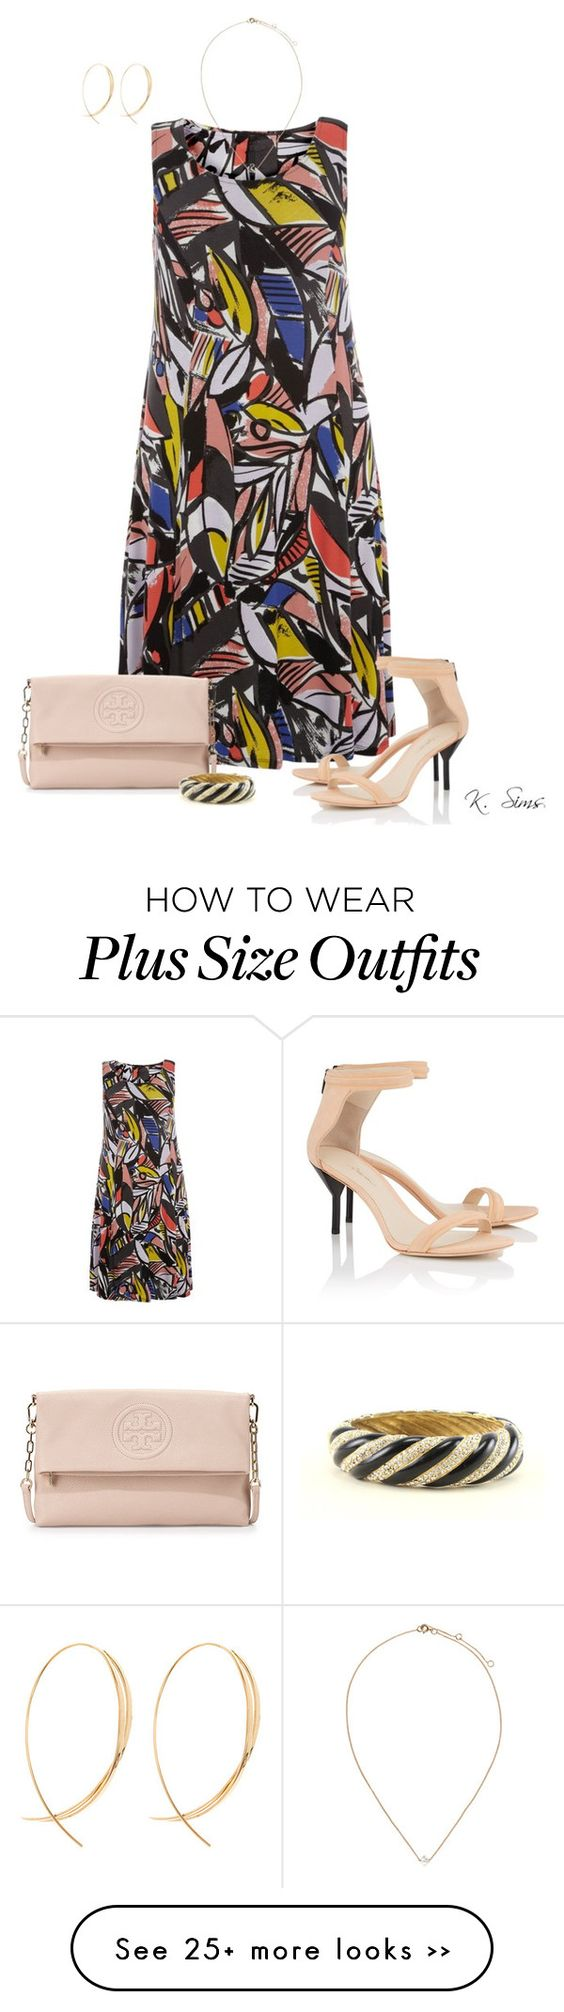 """Untitled #6139"" by ksims-1 on Polyvore:"